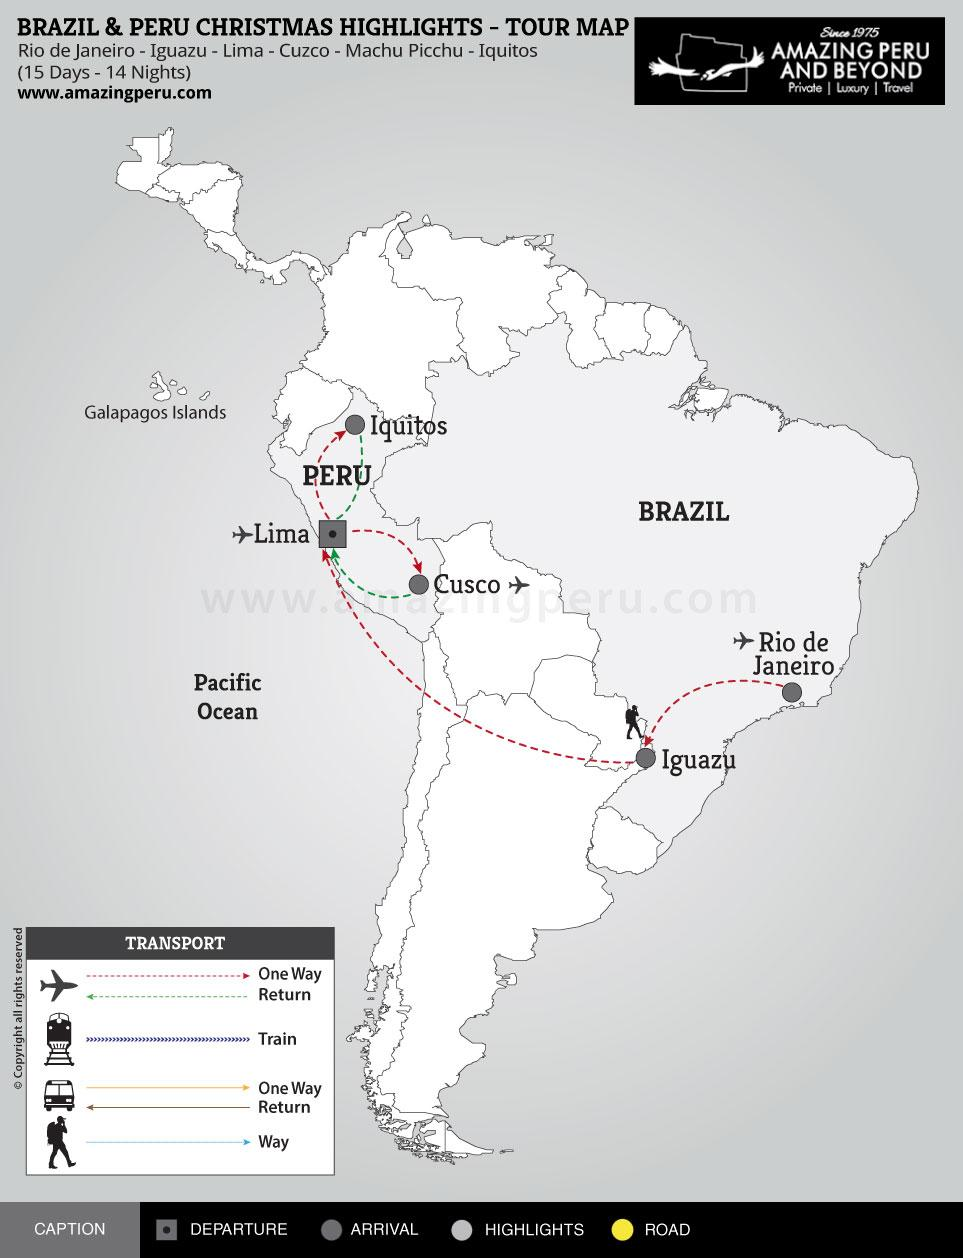 Brazil & Peru Christmas Highlights Tour - 15 days / 14 nights.